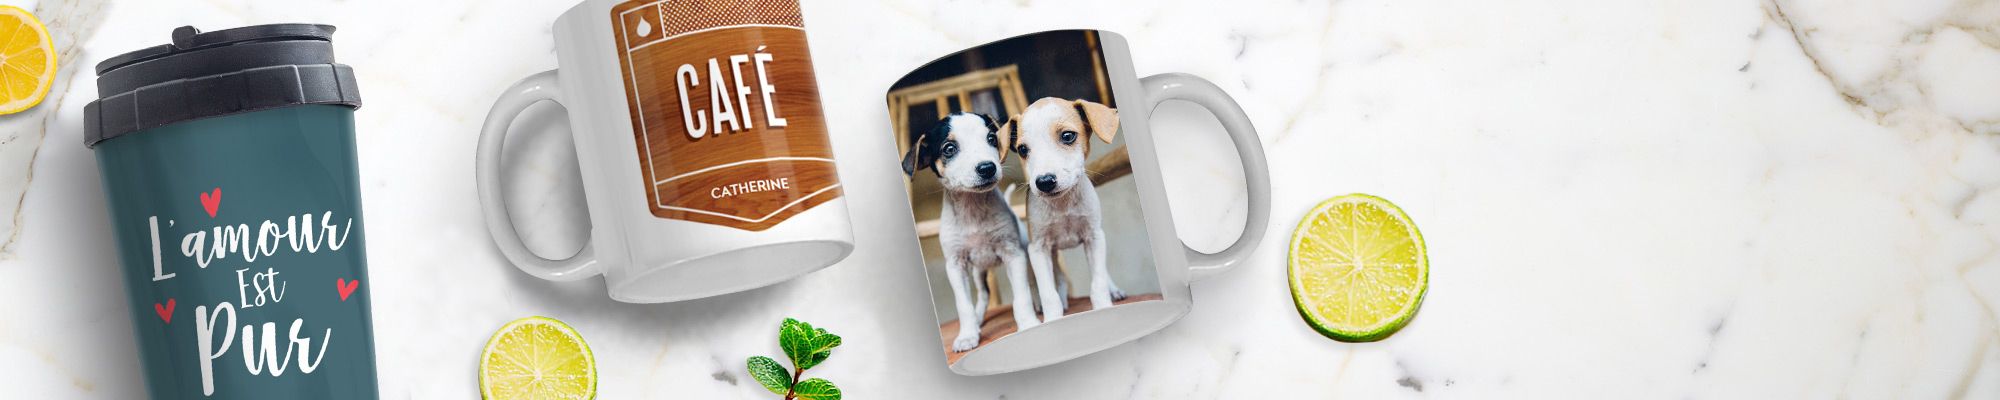 Impression de photos sur des tasses et mugs design